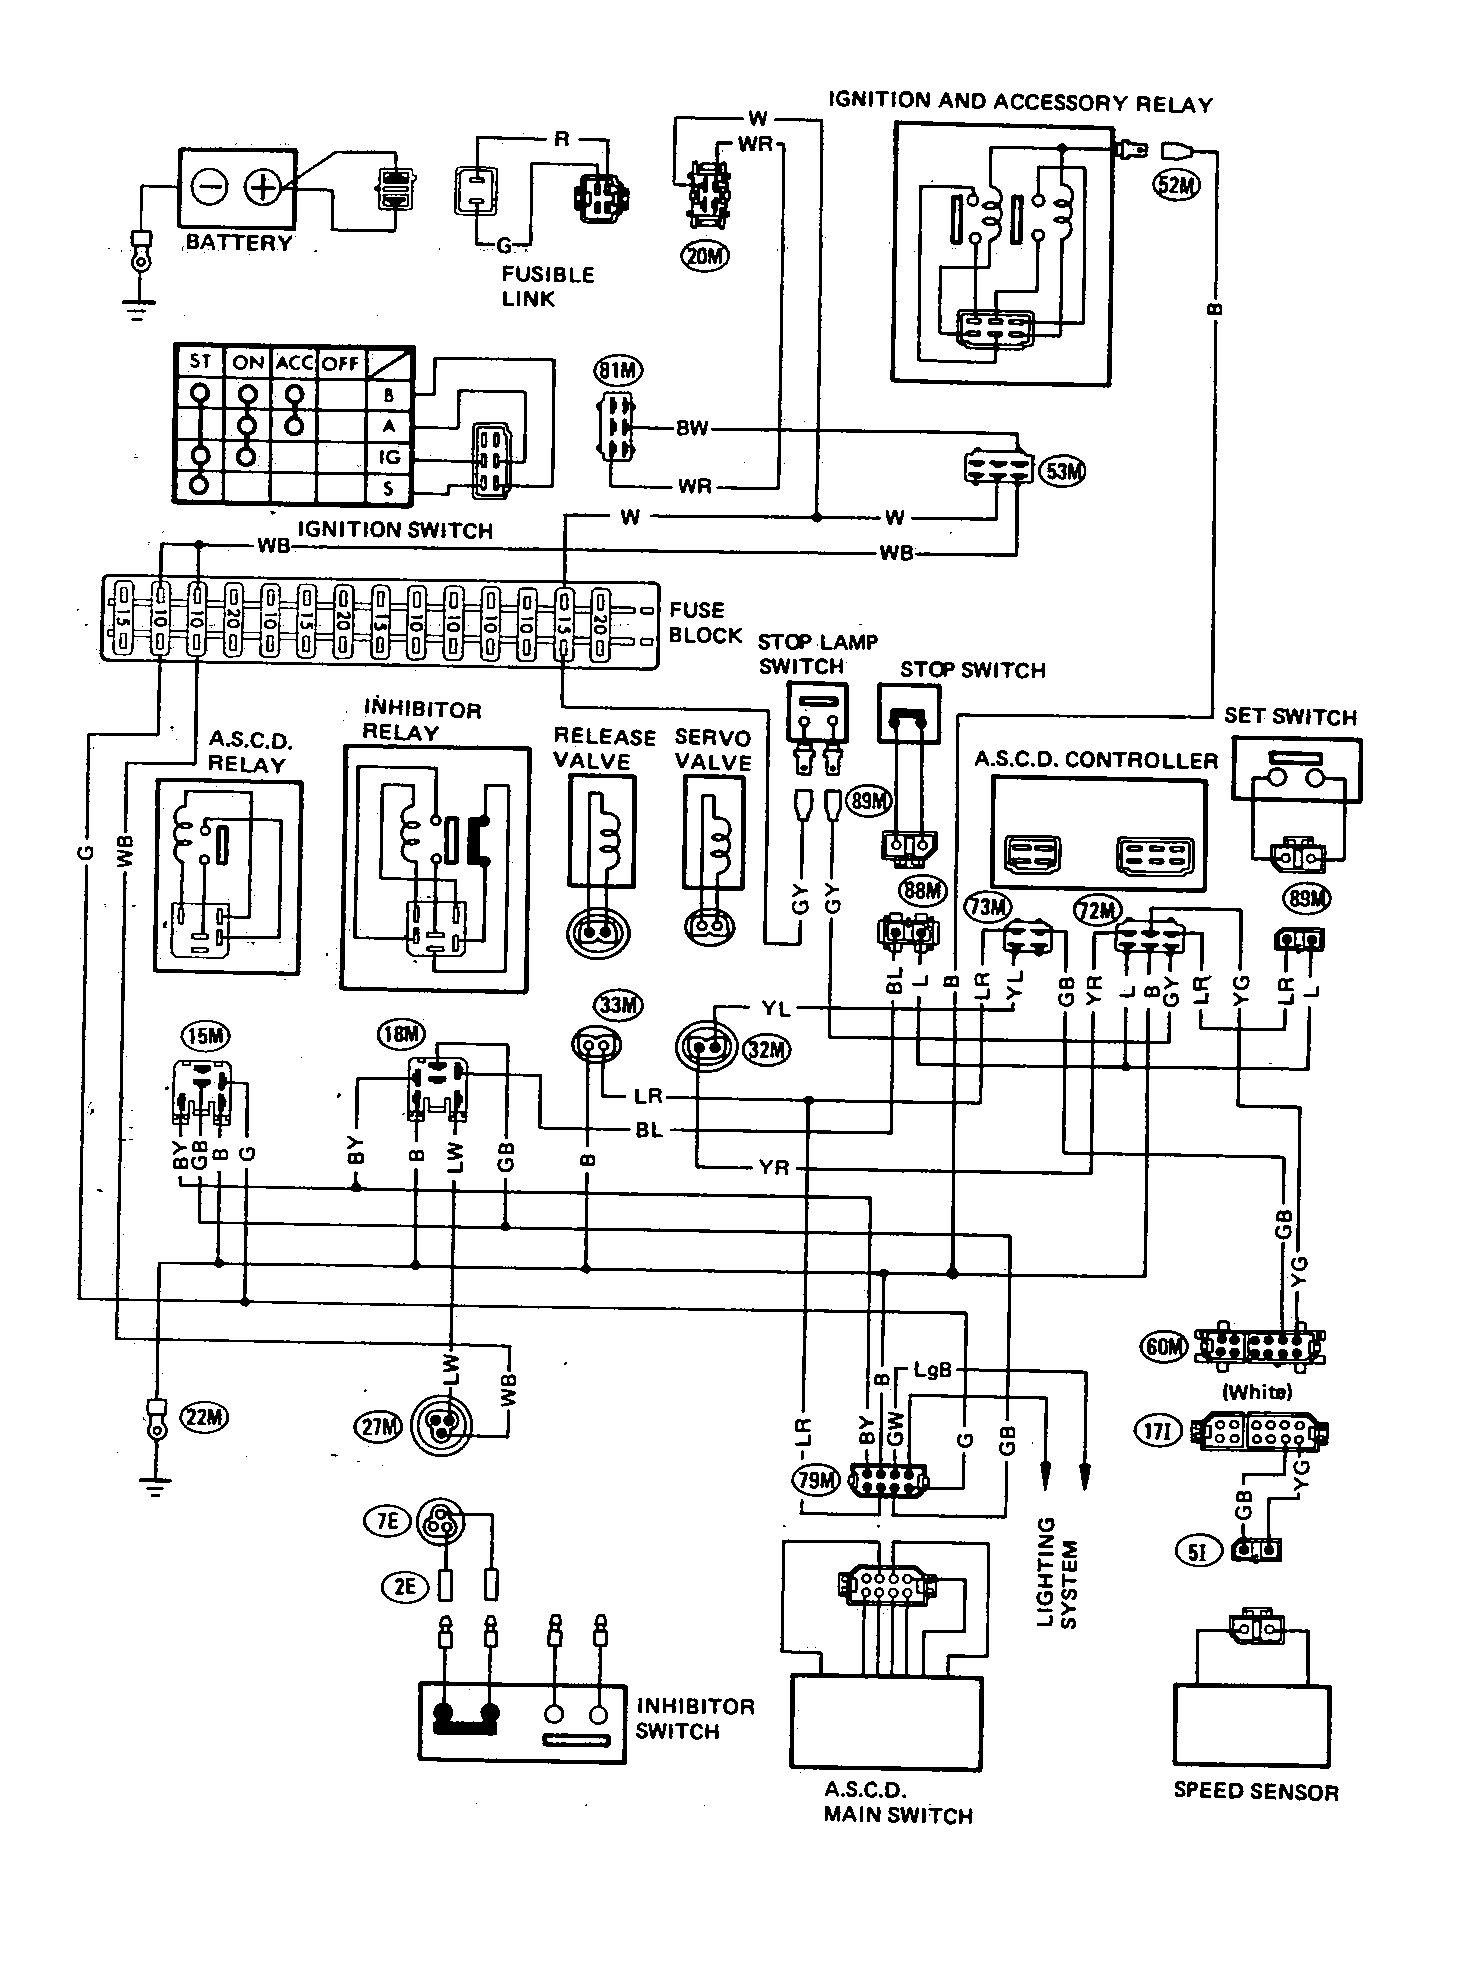 Lincoln Ls Engine Diagram 200sx Engine Wiring Harness Get Free Image About  Wiring Diagram Of Lincoln